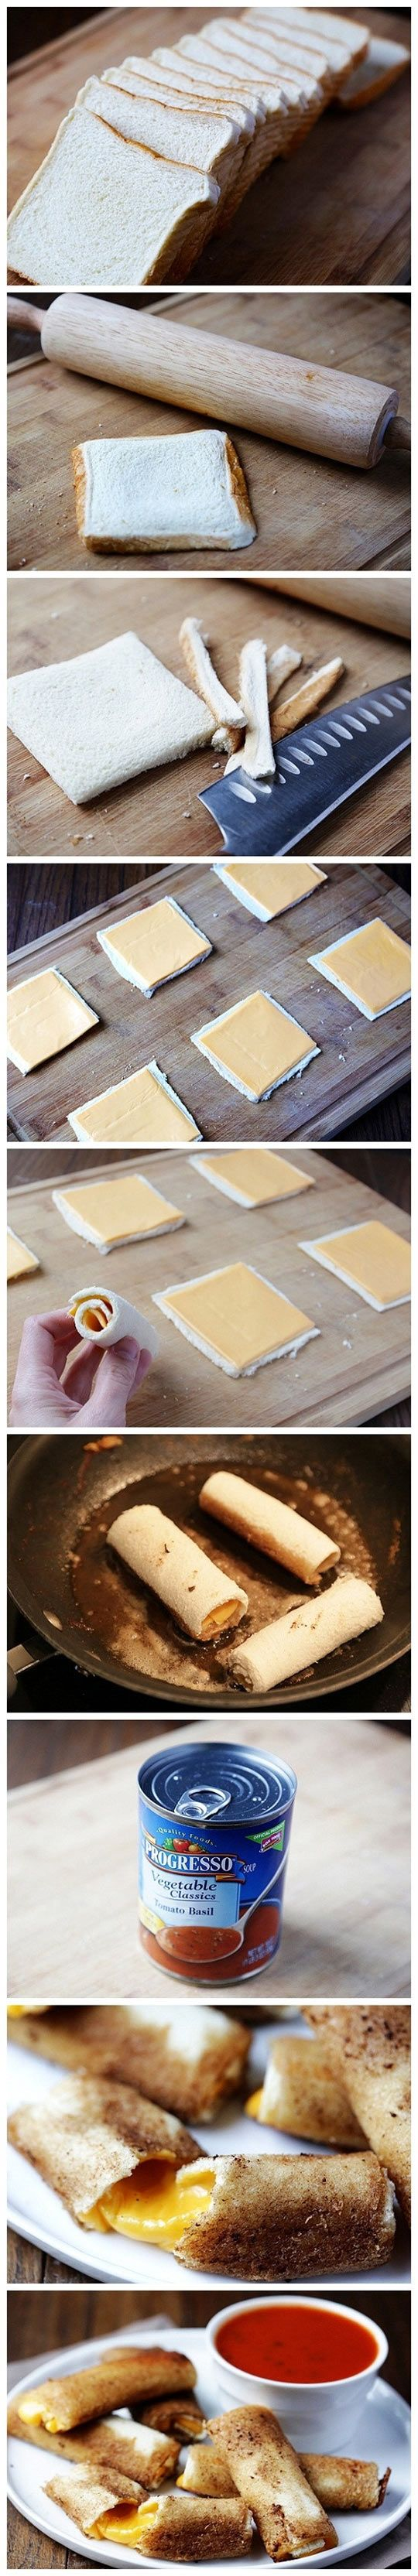 Grilled cheese sticks for dipping in soup! But with REAL cheese!!!!